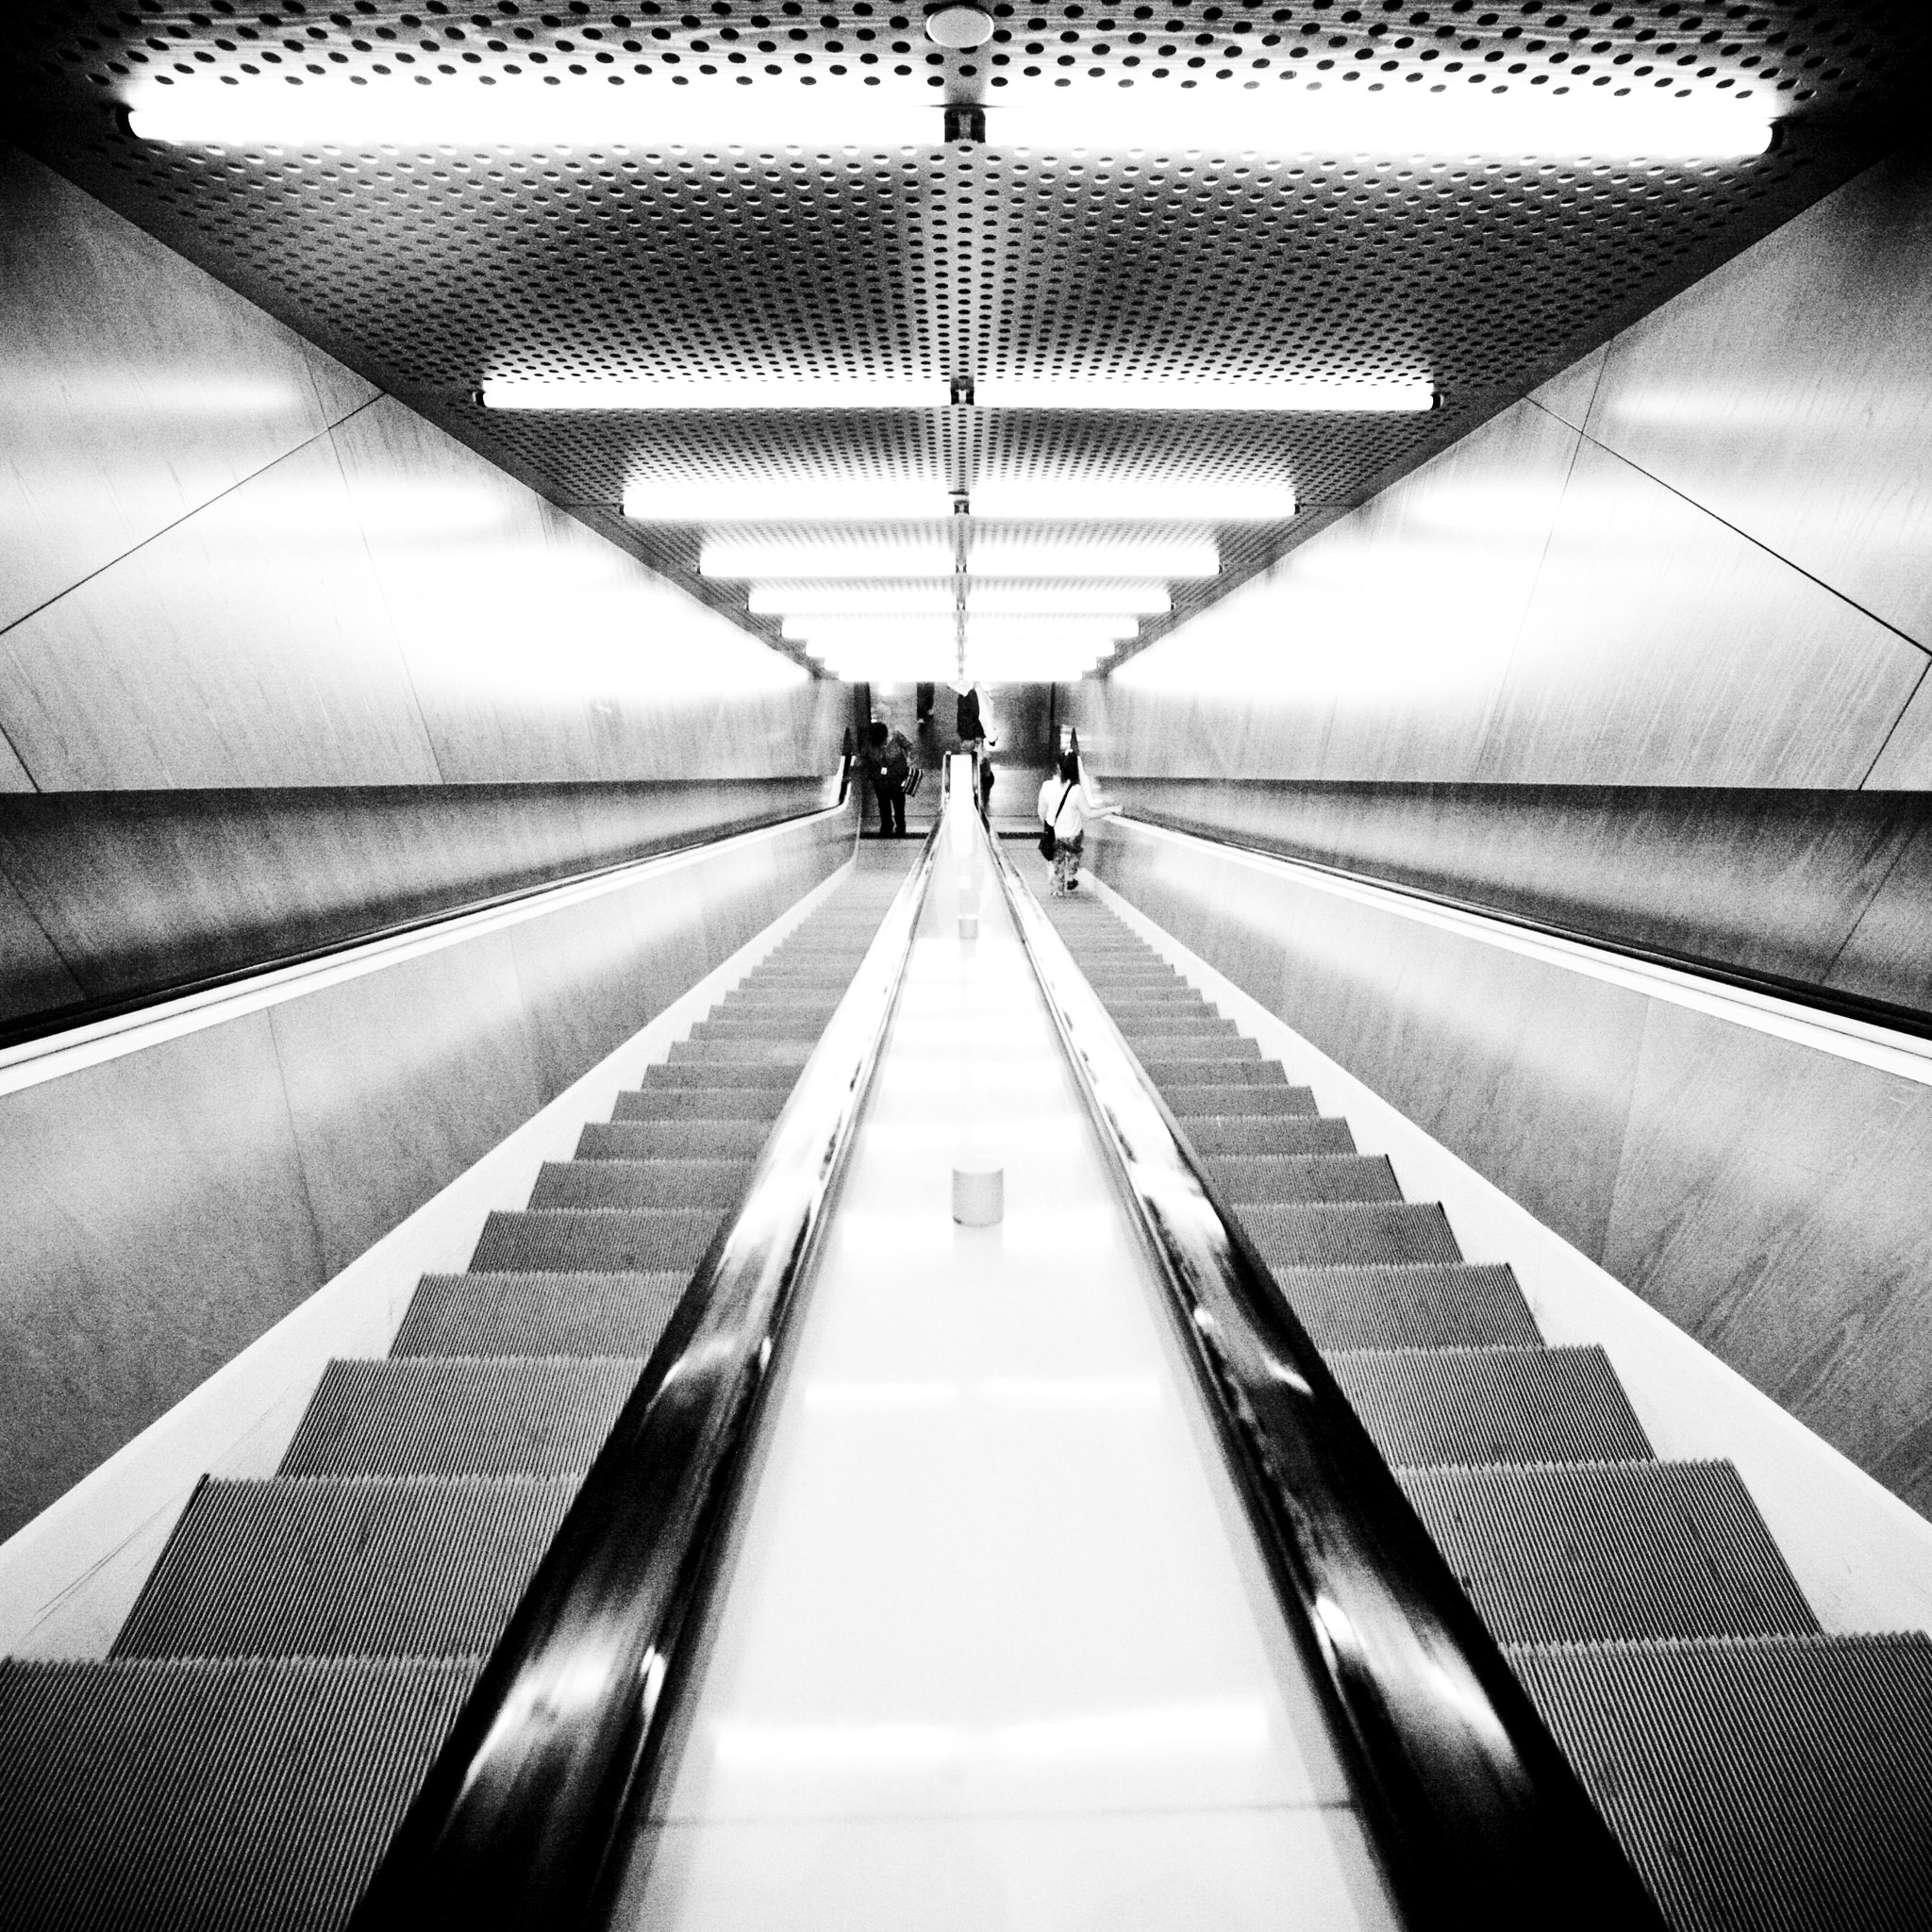 thomas hawk - people in escalator ipad wallpaper